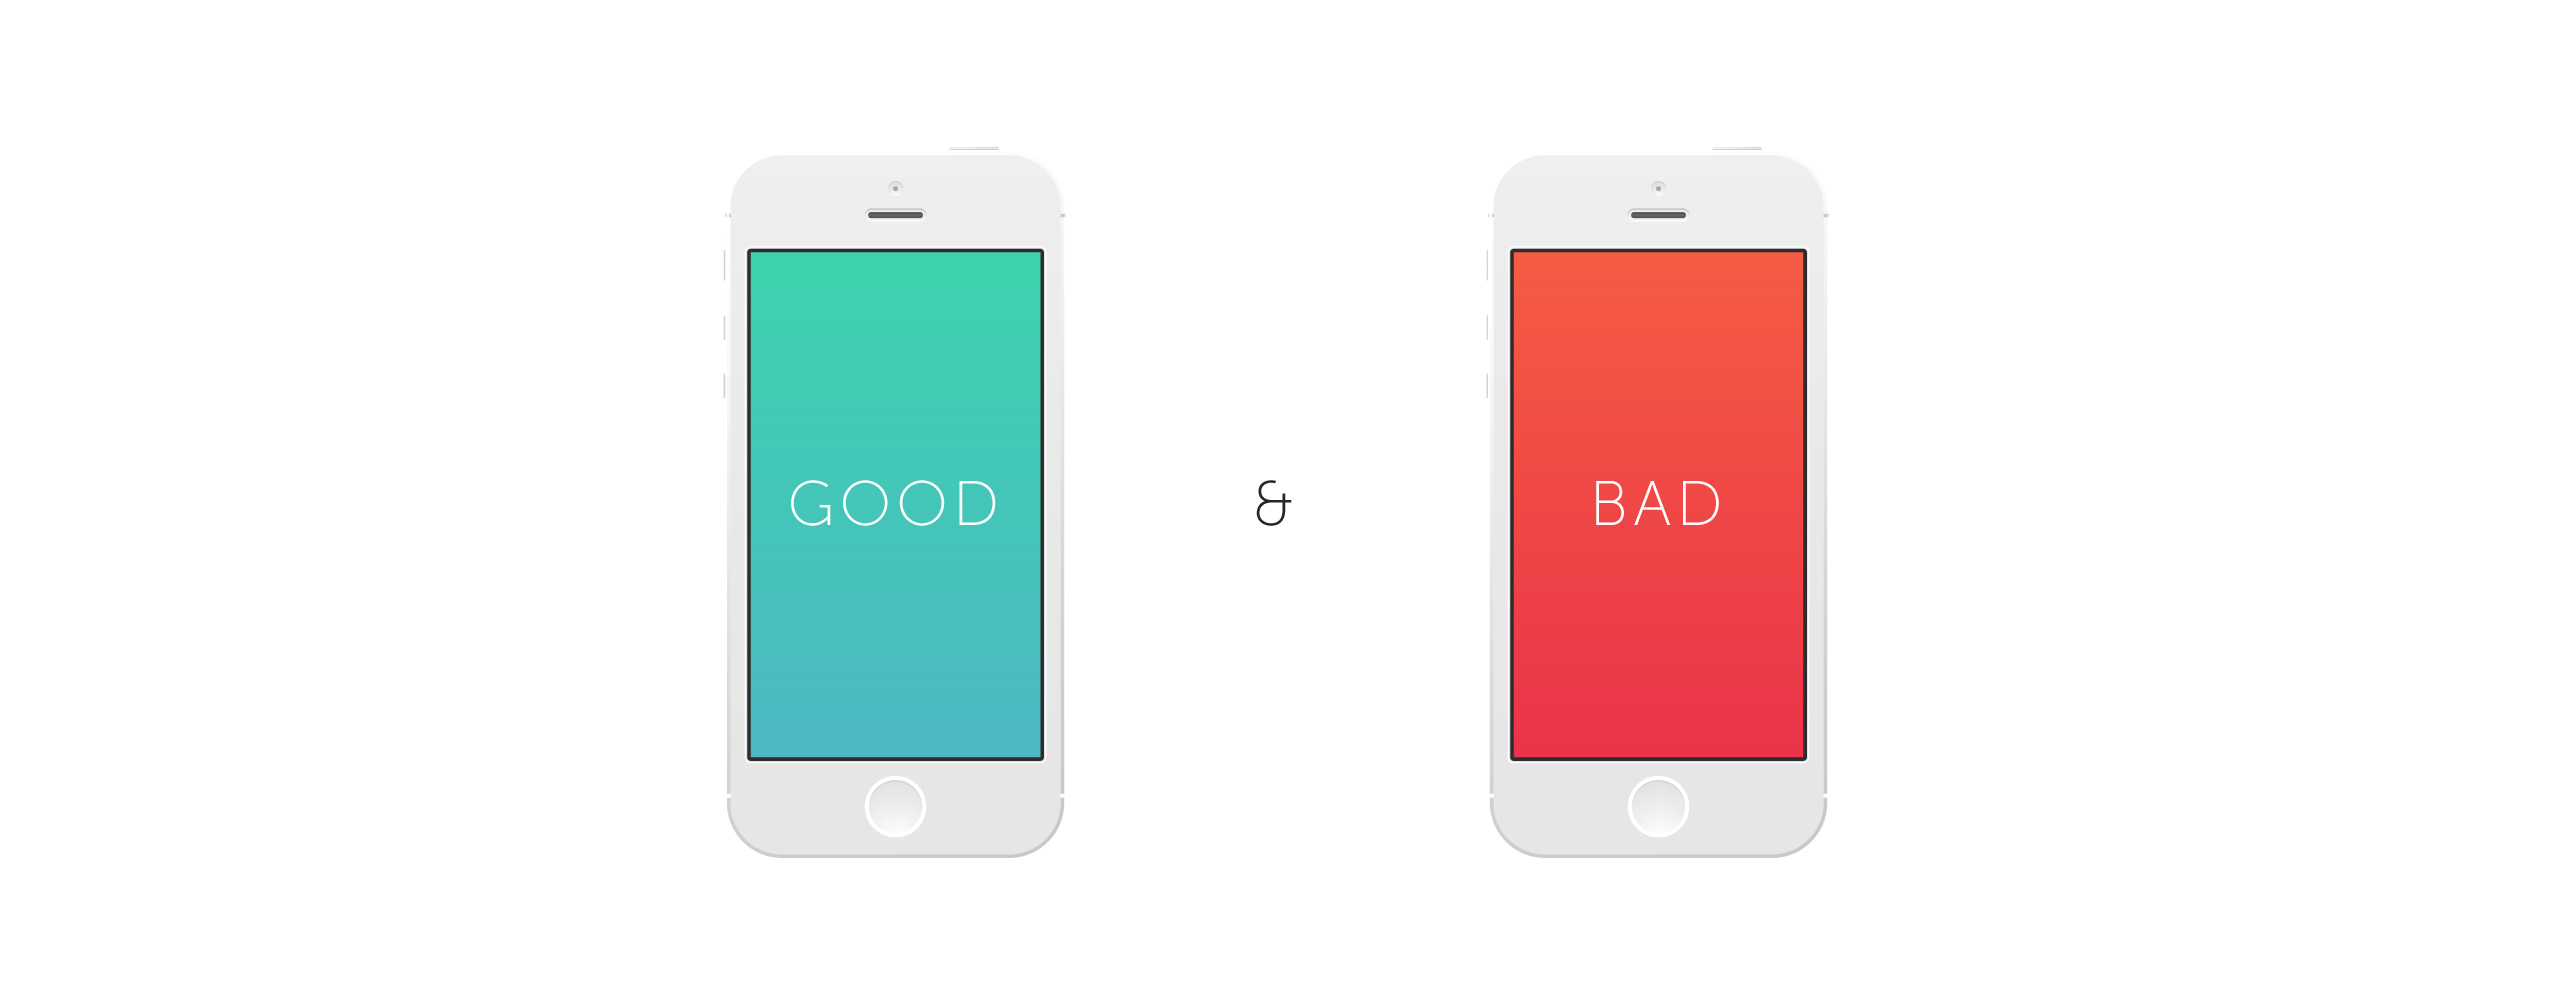 50 Important App Design Tips for iOS and Android | Buzinga